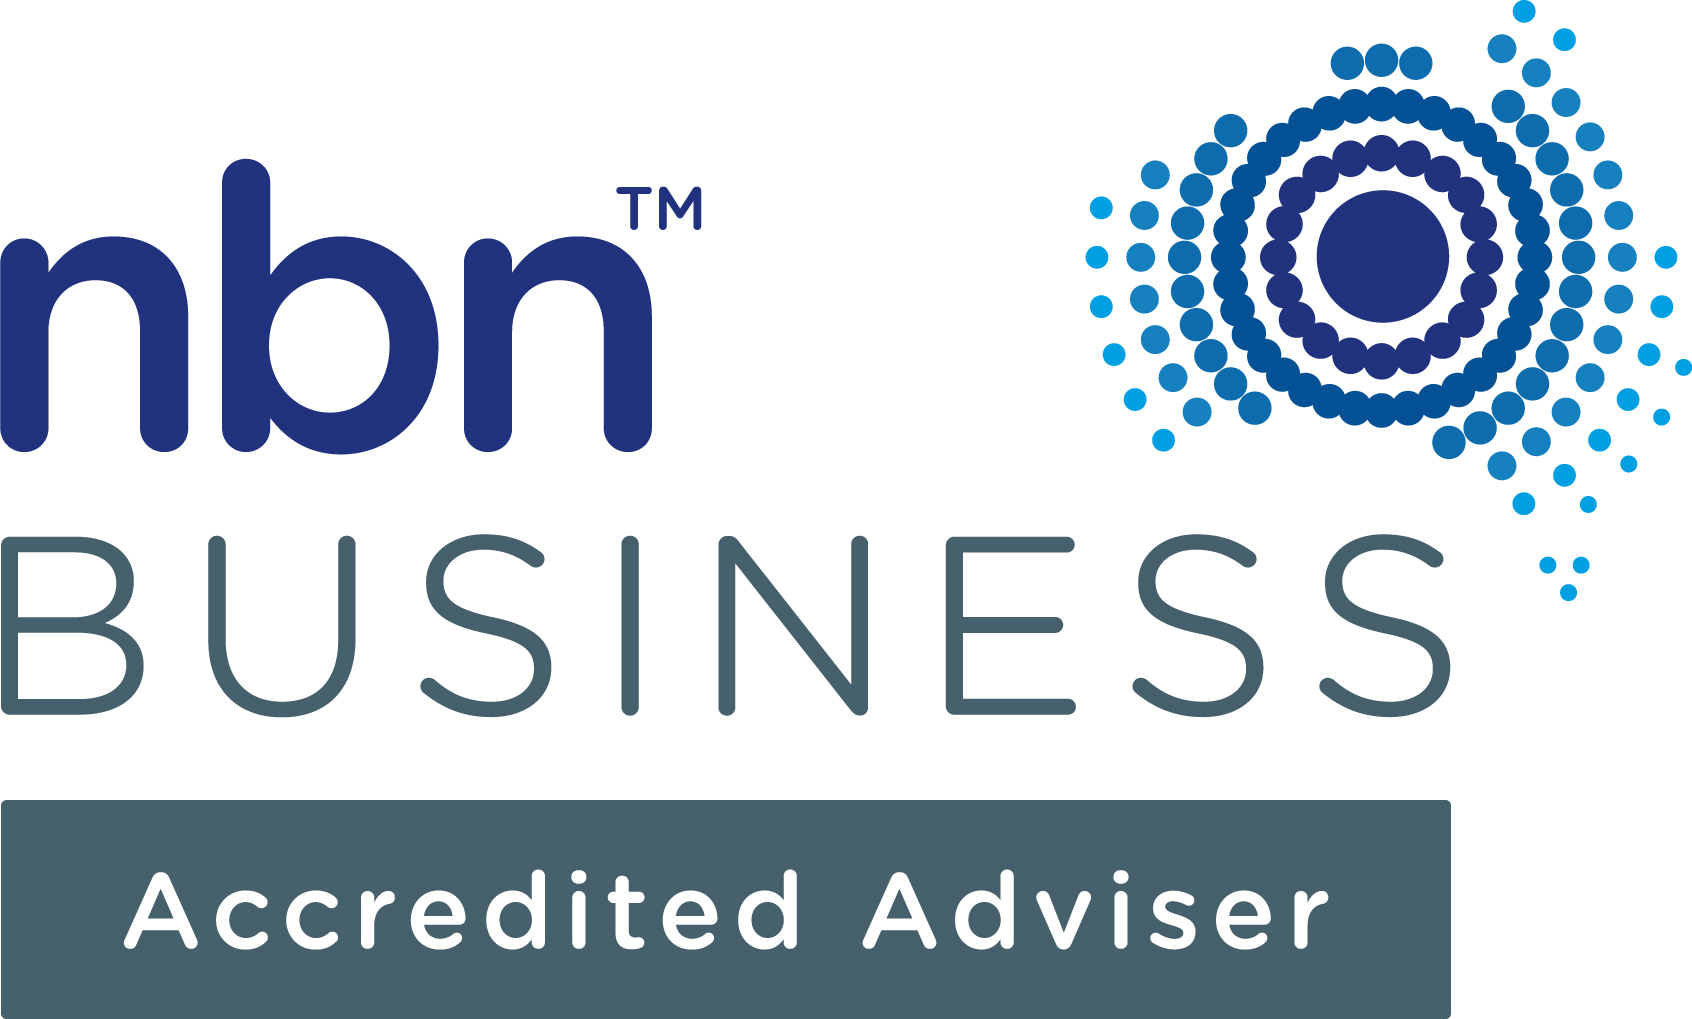 ExpressCom NBN Business Accredited Advisers